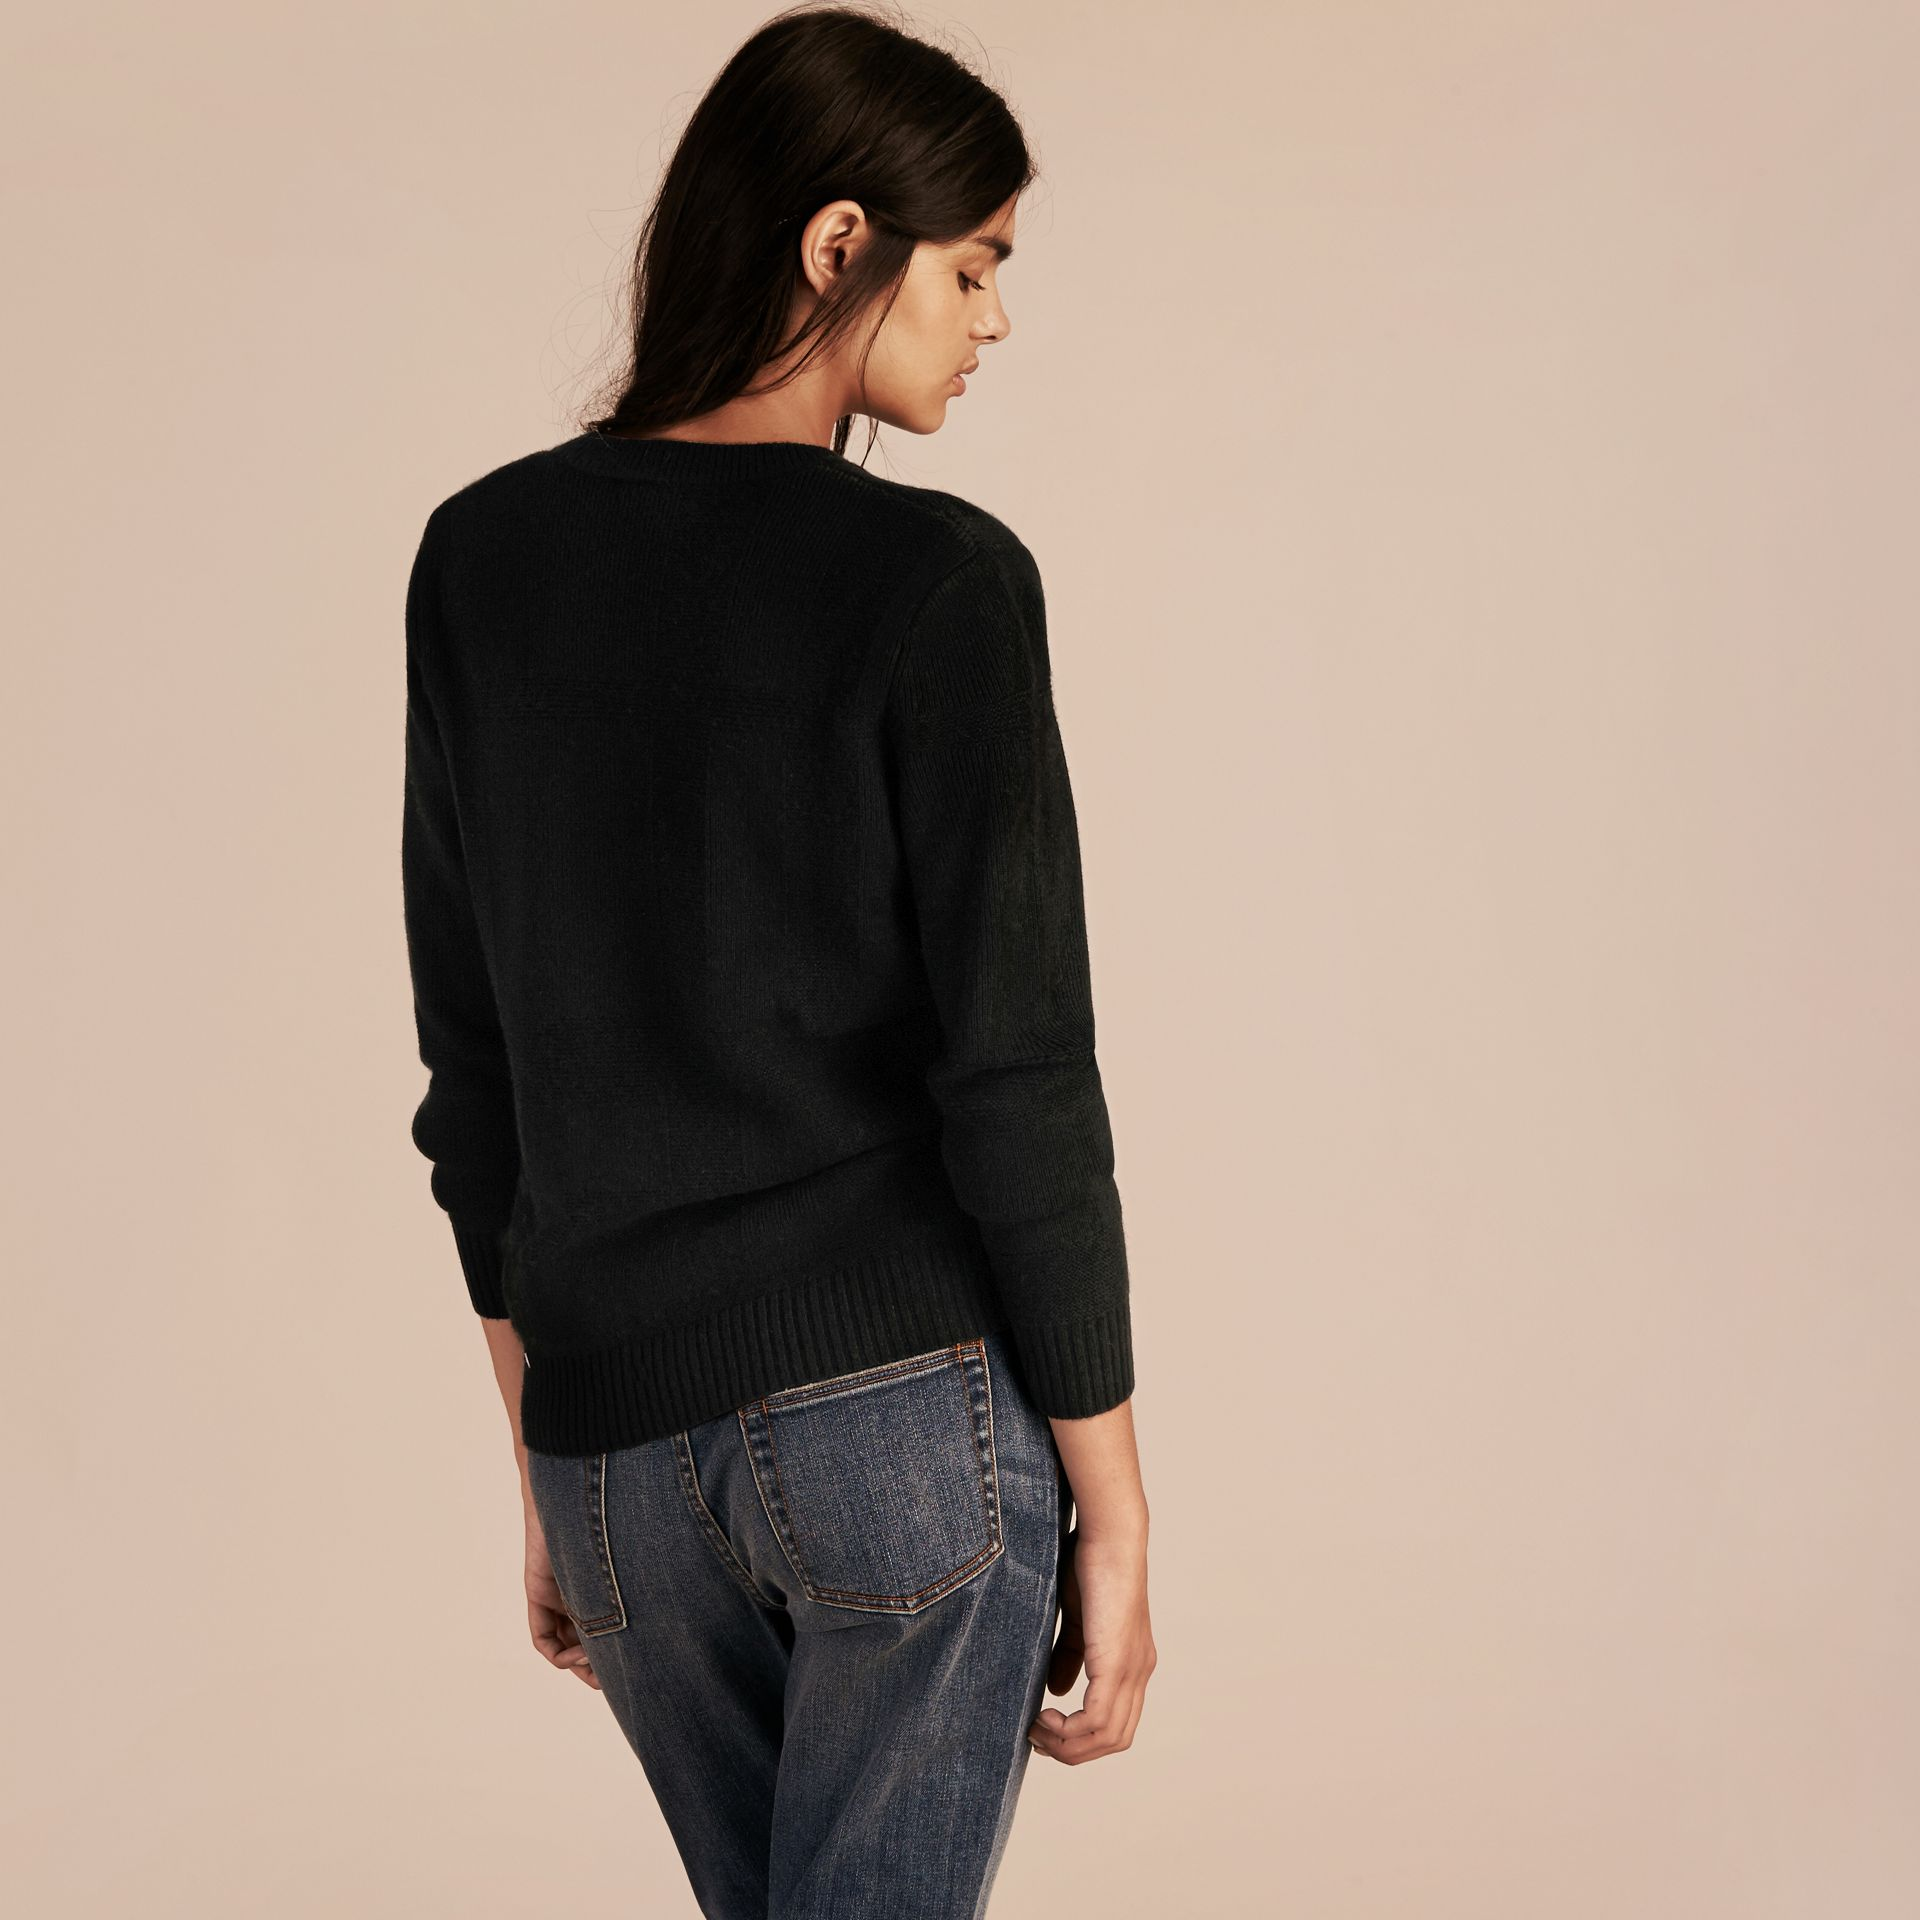 Black Check-knit Wool Cashmere Sweater Black - gallery image 3